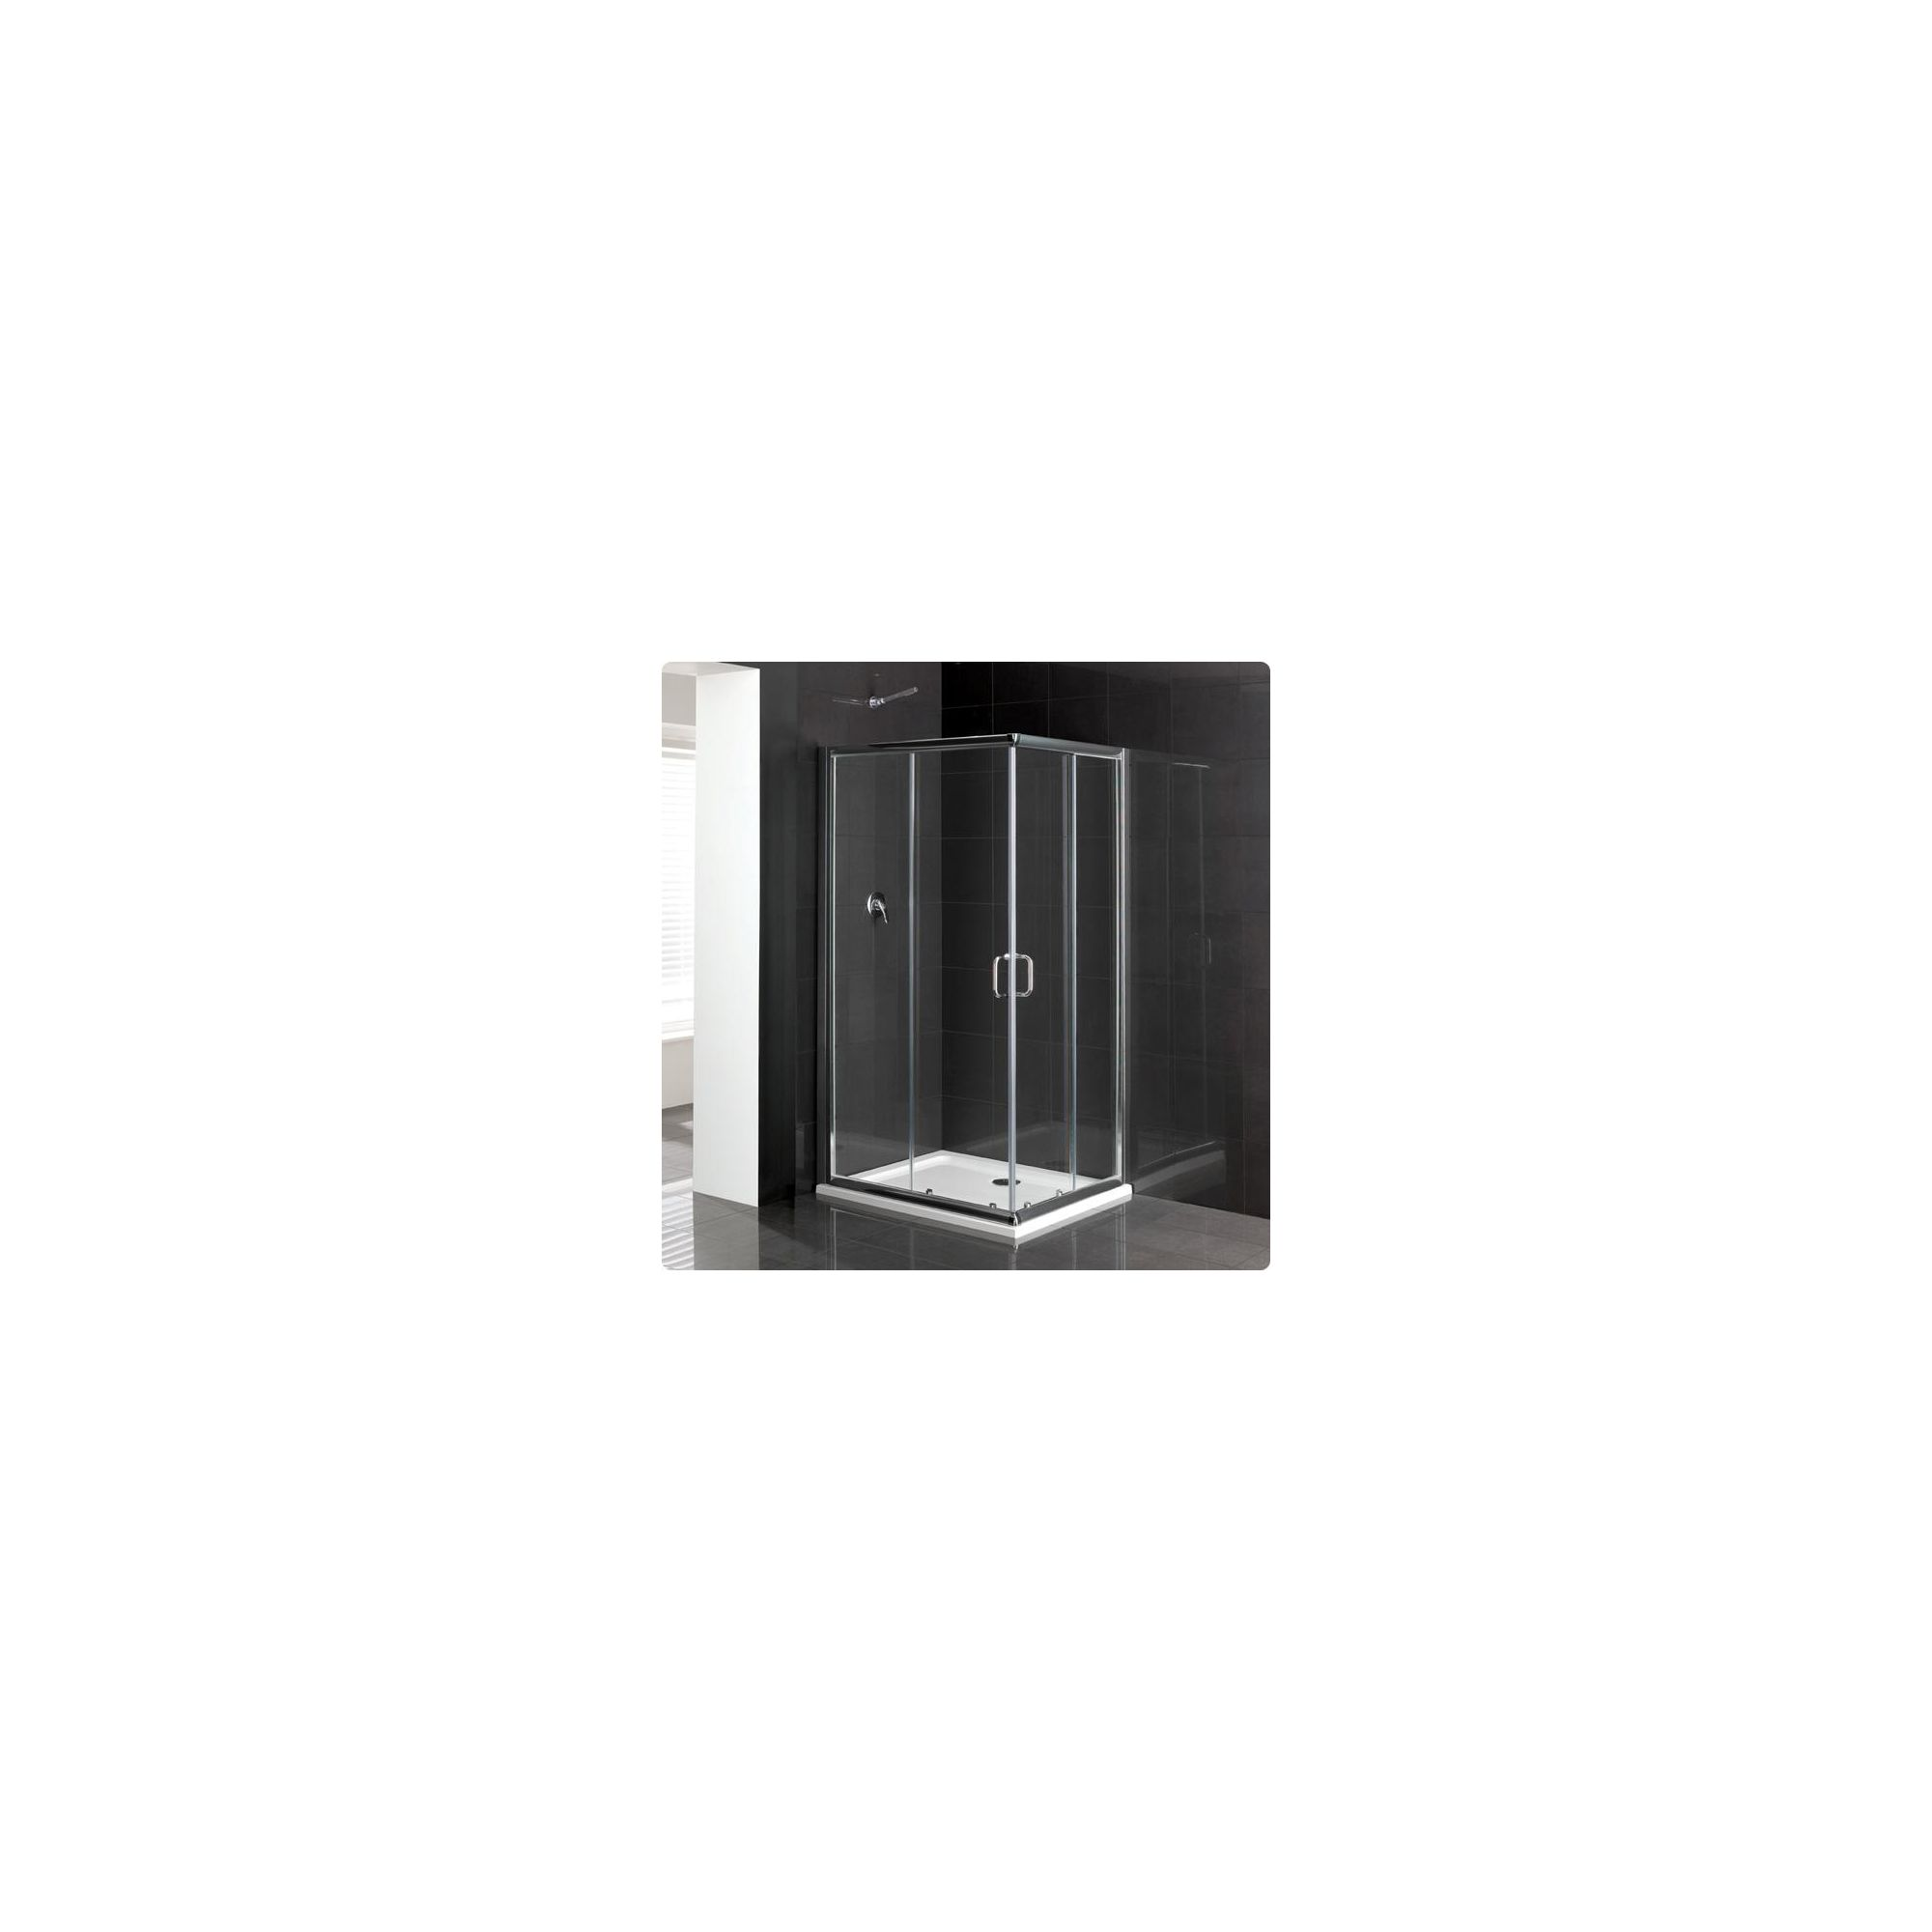 Duchy Elite Silver Corner Entry Shower Enclosure 900mm x 900mm, Standard Tray, 6mm Glass at Tesco Direct